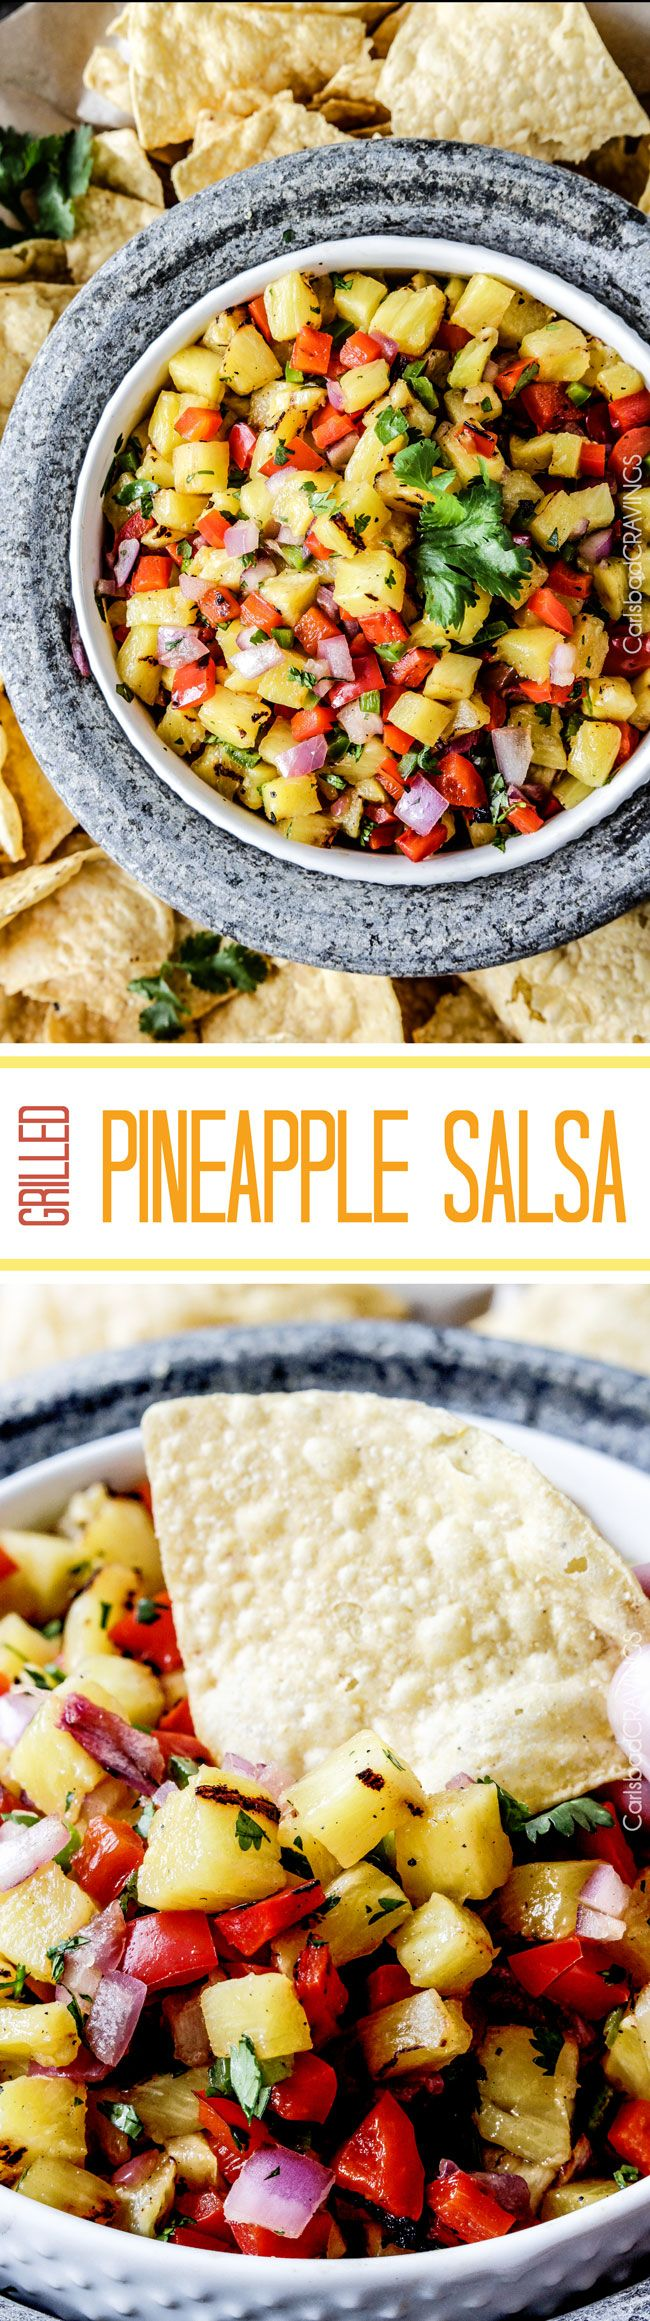 Sweet and smoky Grilled Pineapple salsa with not only grilled pineapple but GRILLED red bell peppers, red onions AND jalapeno! sweet and smoky and possibly the best salsa E-V-E-R alone, with chips, tacos or on fish/chicken. #pineapple #salsa #pineapplesalsa #grill